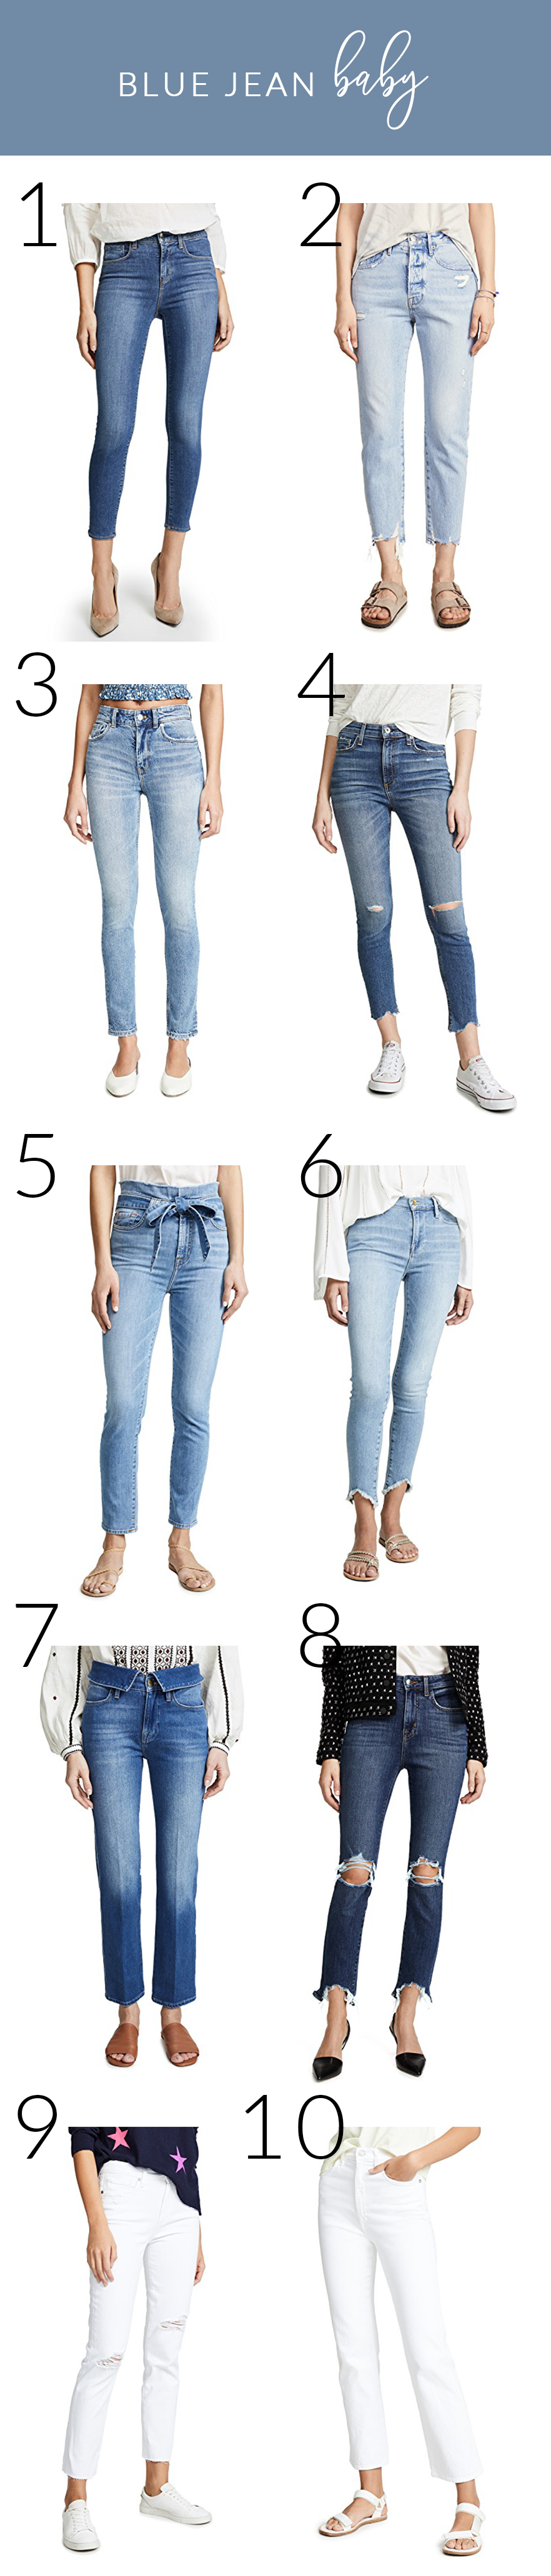 favorite brands of denim